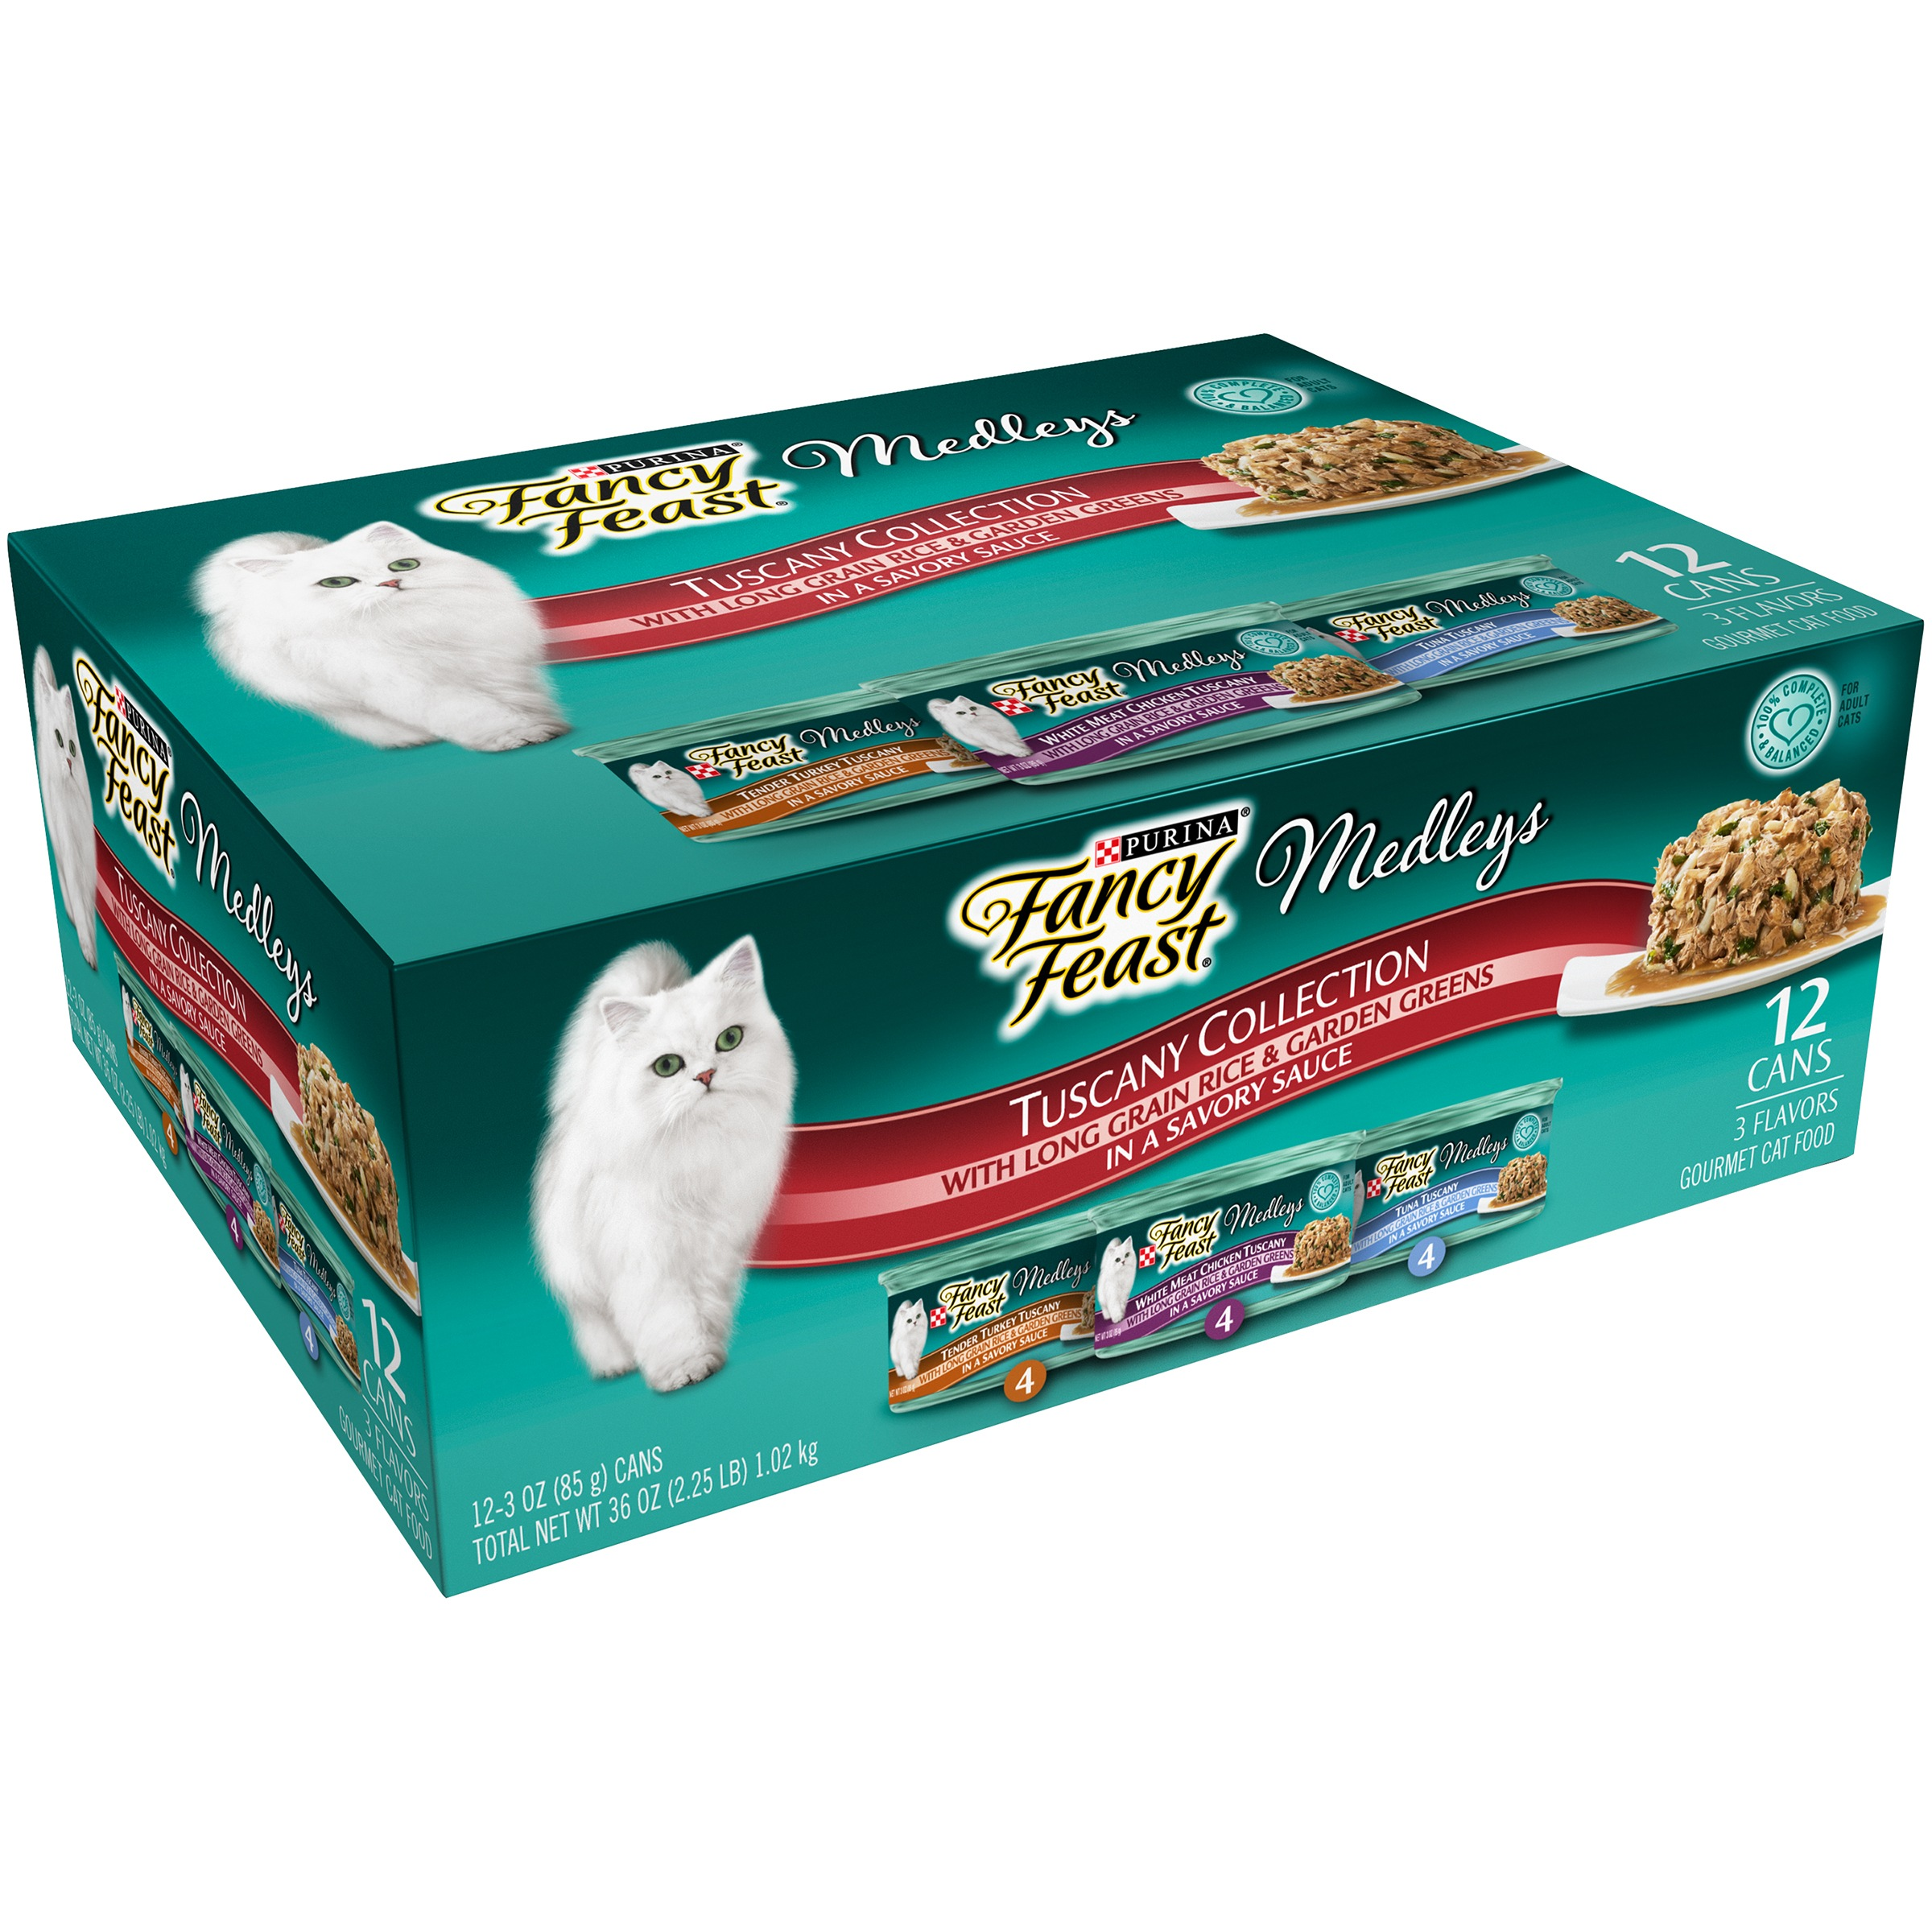 Fancy Feast Elegant Medleys Tuscany Collection Cat Food, 12 Ct by Nestlé Purina PetCare Company